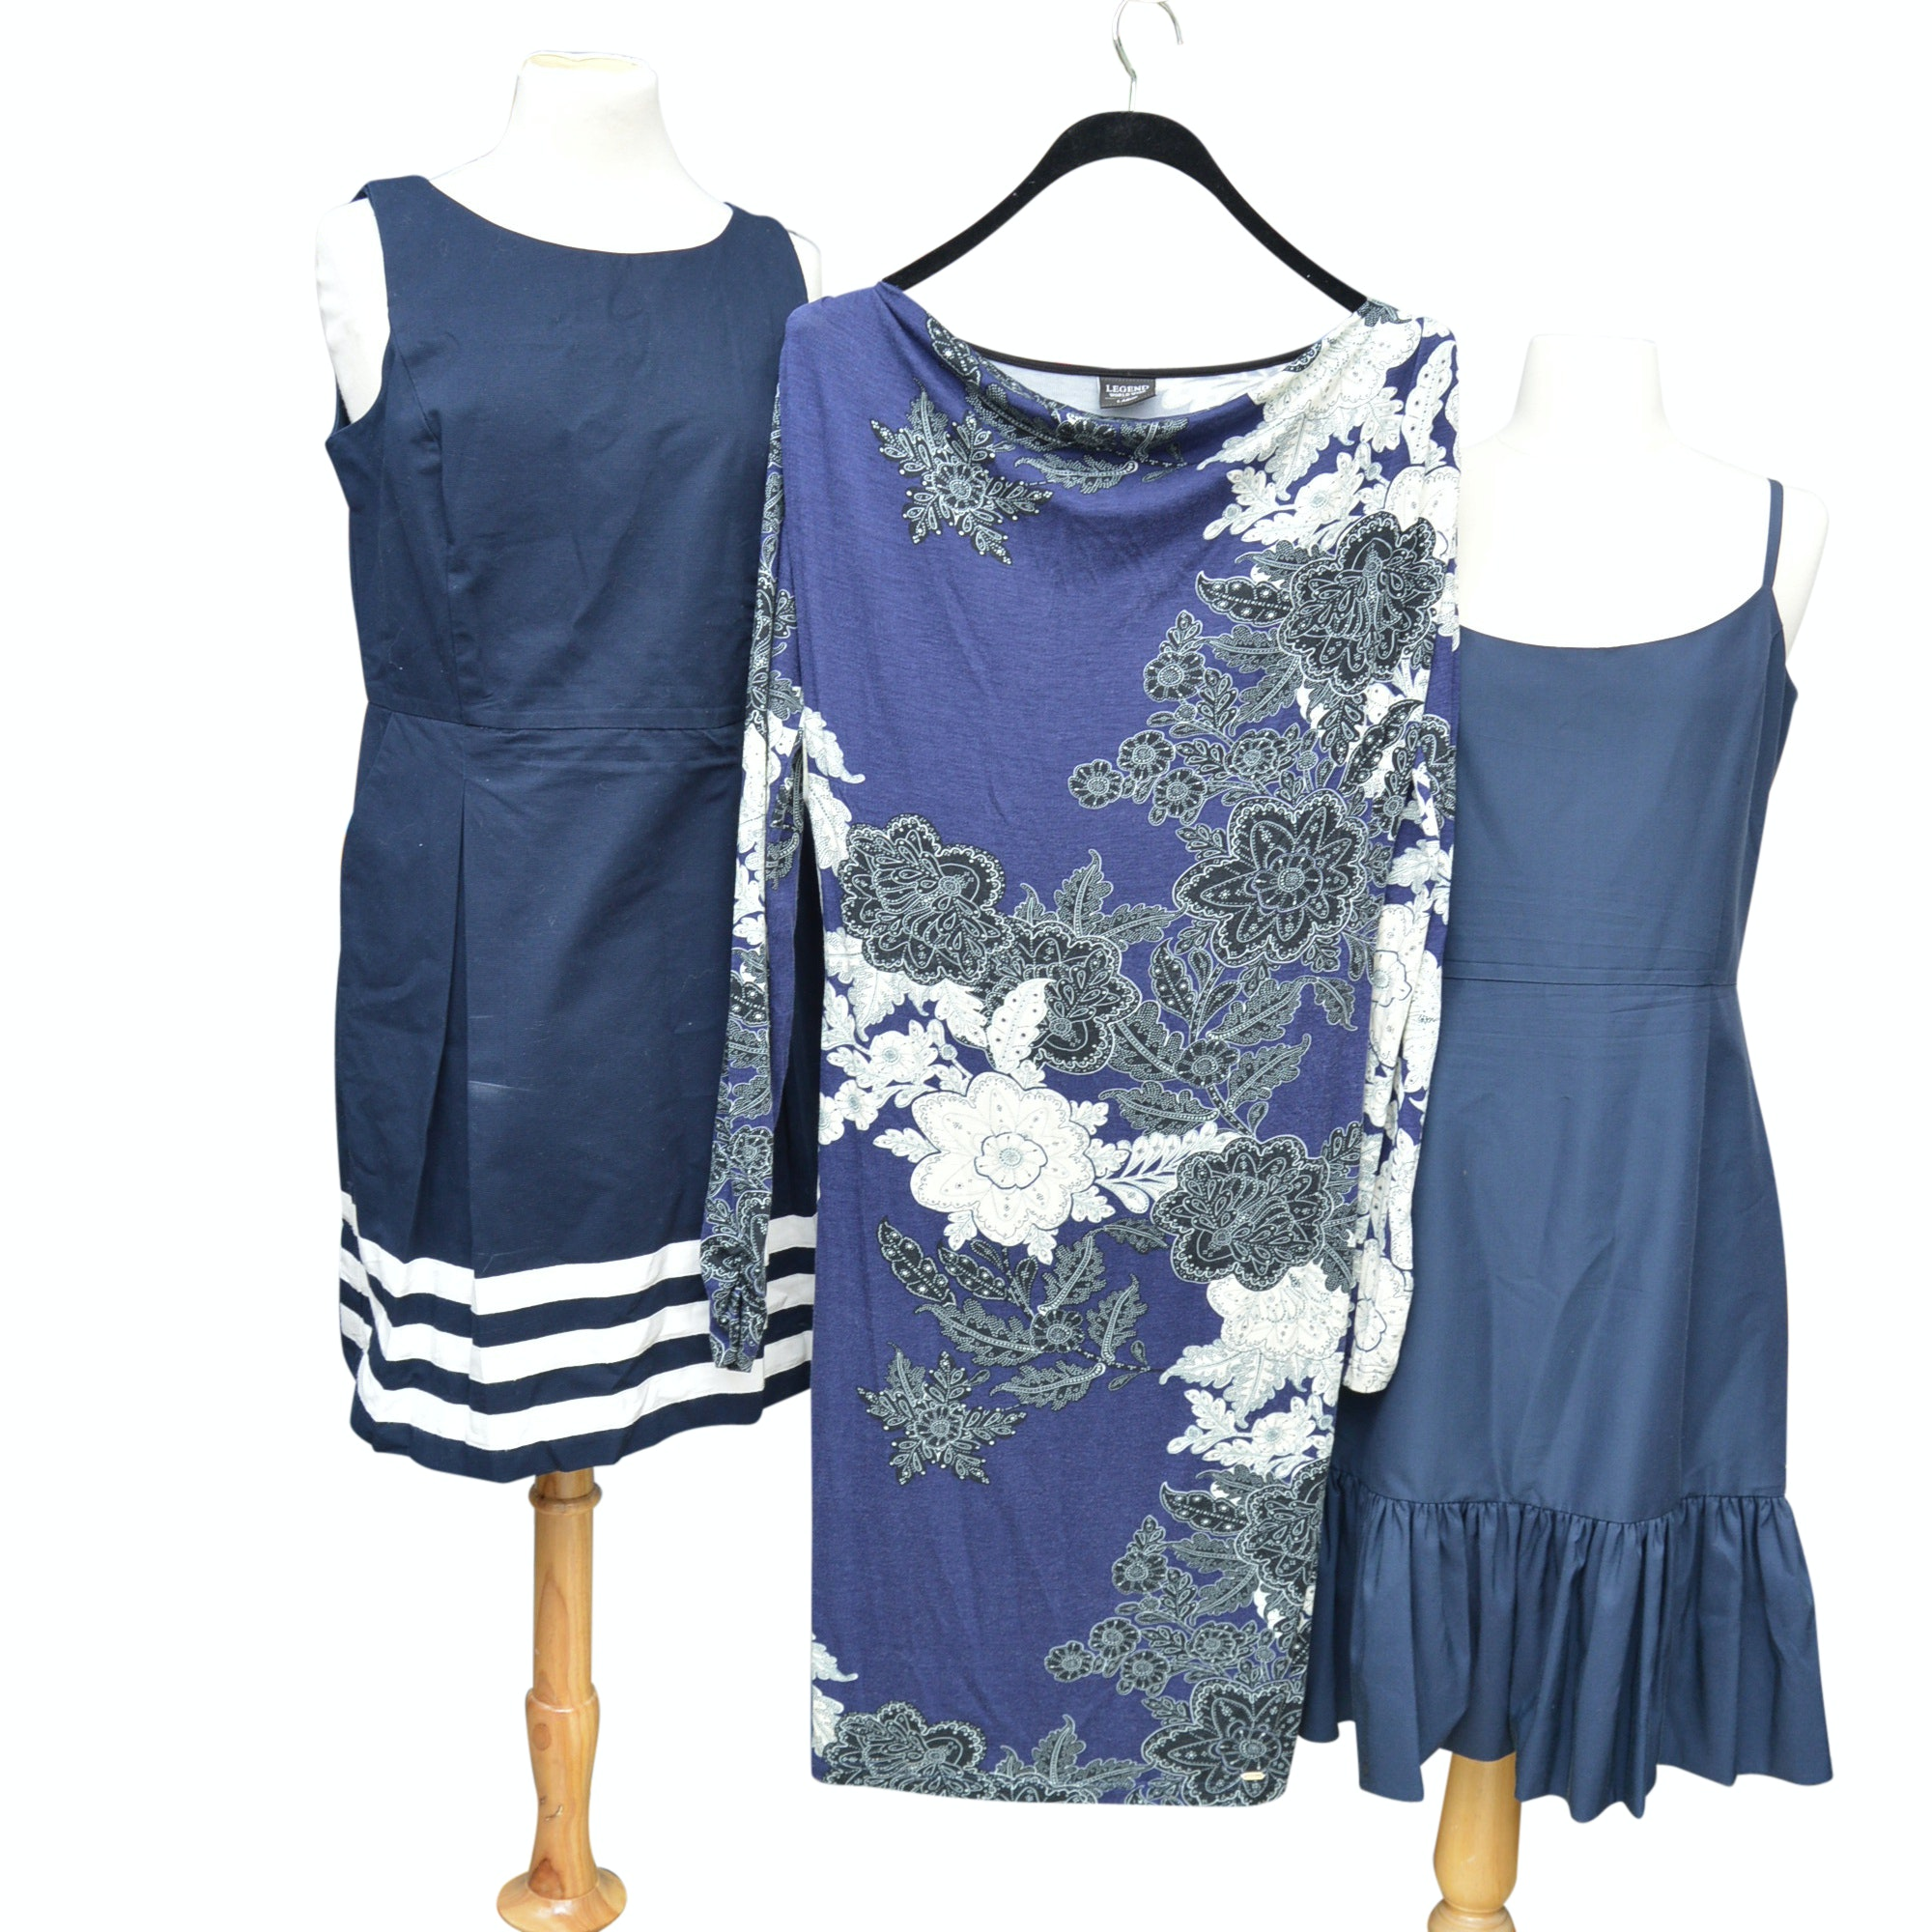 Women's Designer Dresses with Kate Spade and Tommy Hilfiger